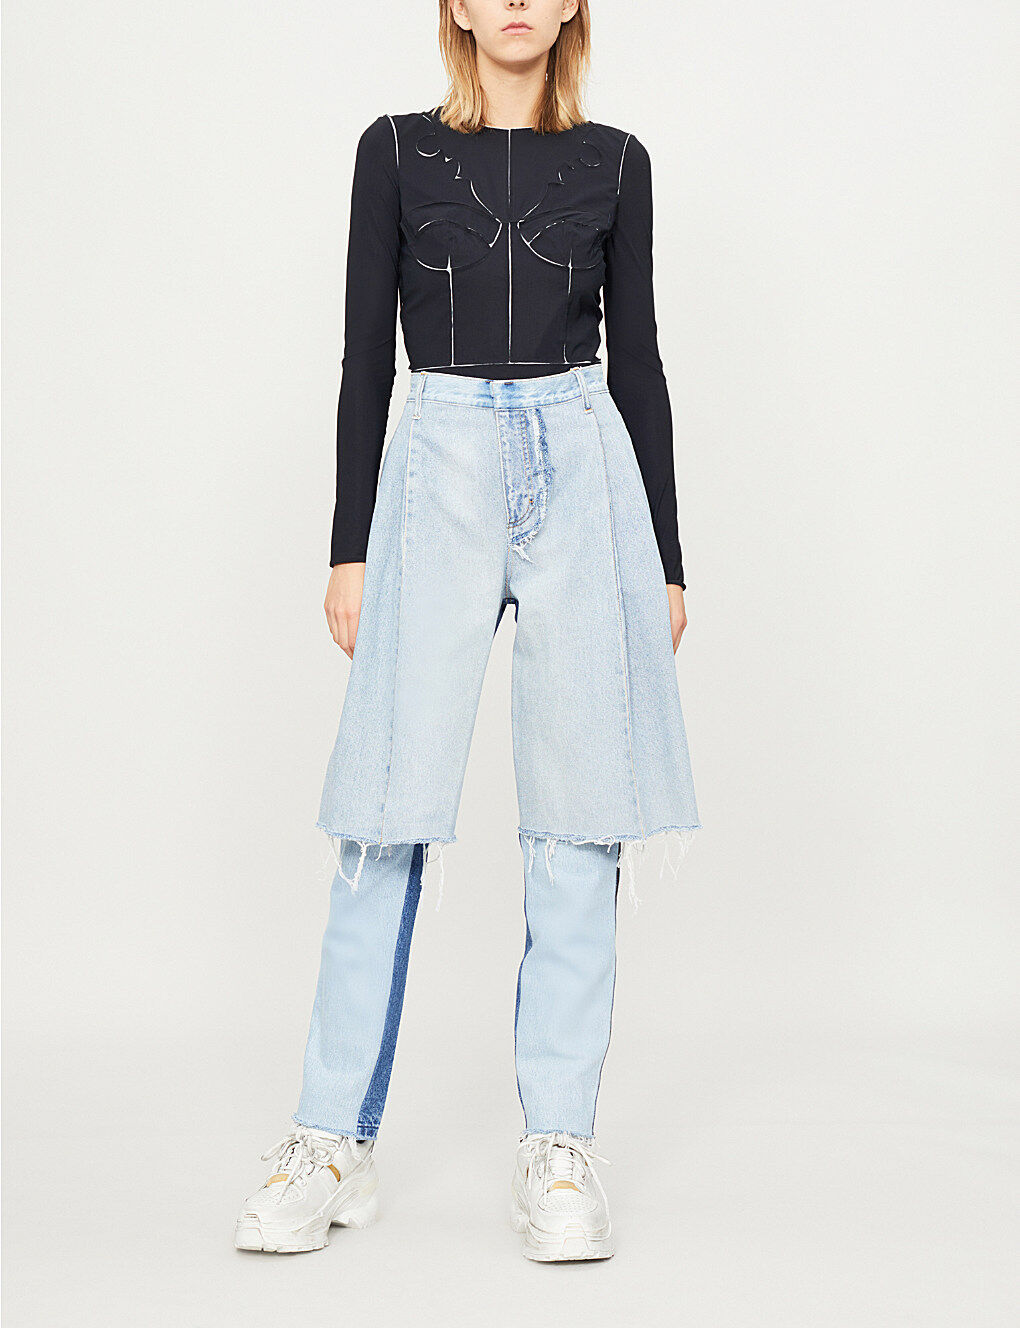 KSENIA SCHNAIDER Reworked Demi Denims Wide-Panel Straight High-Rise Jeans - S